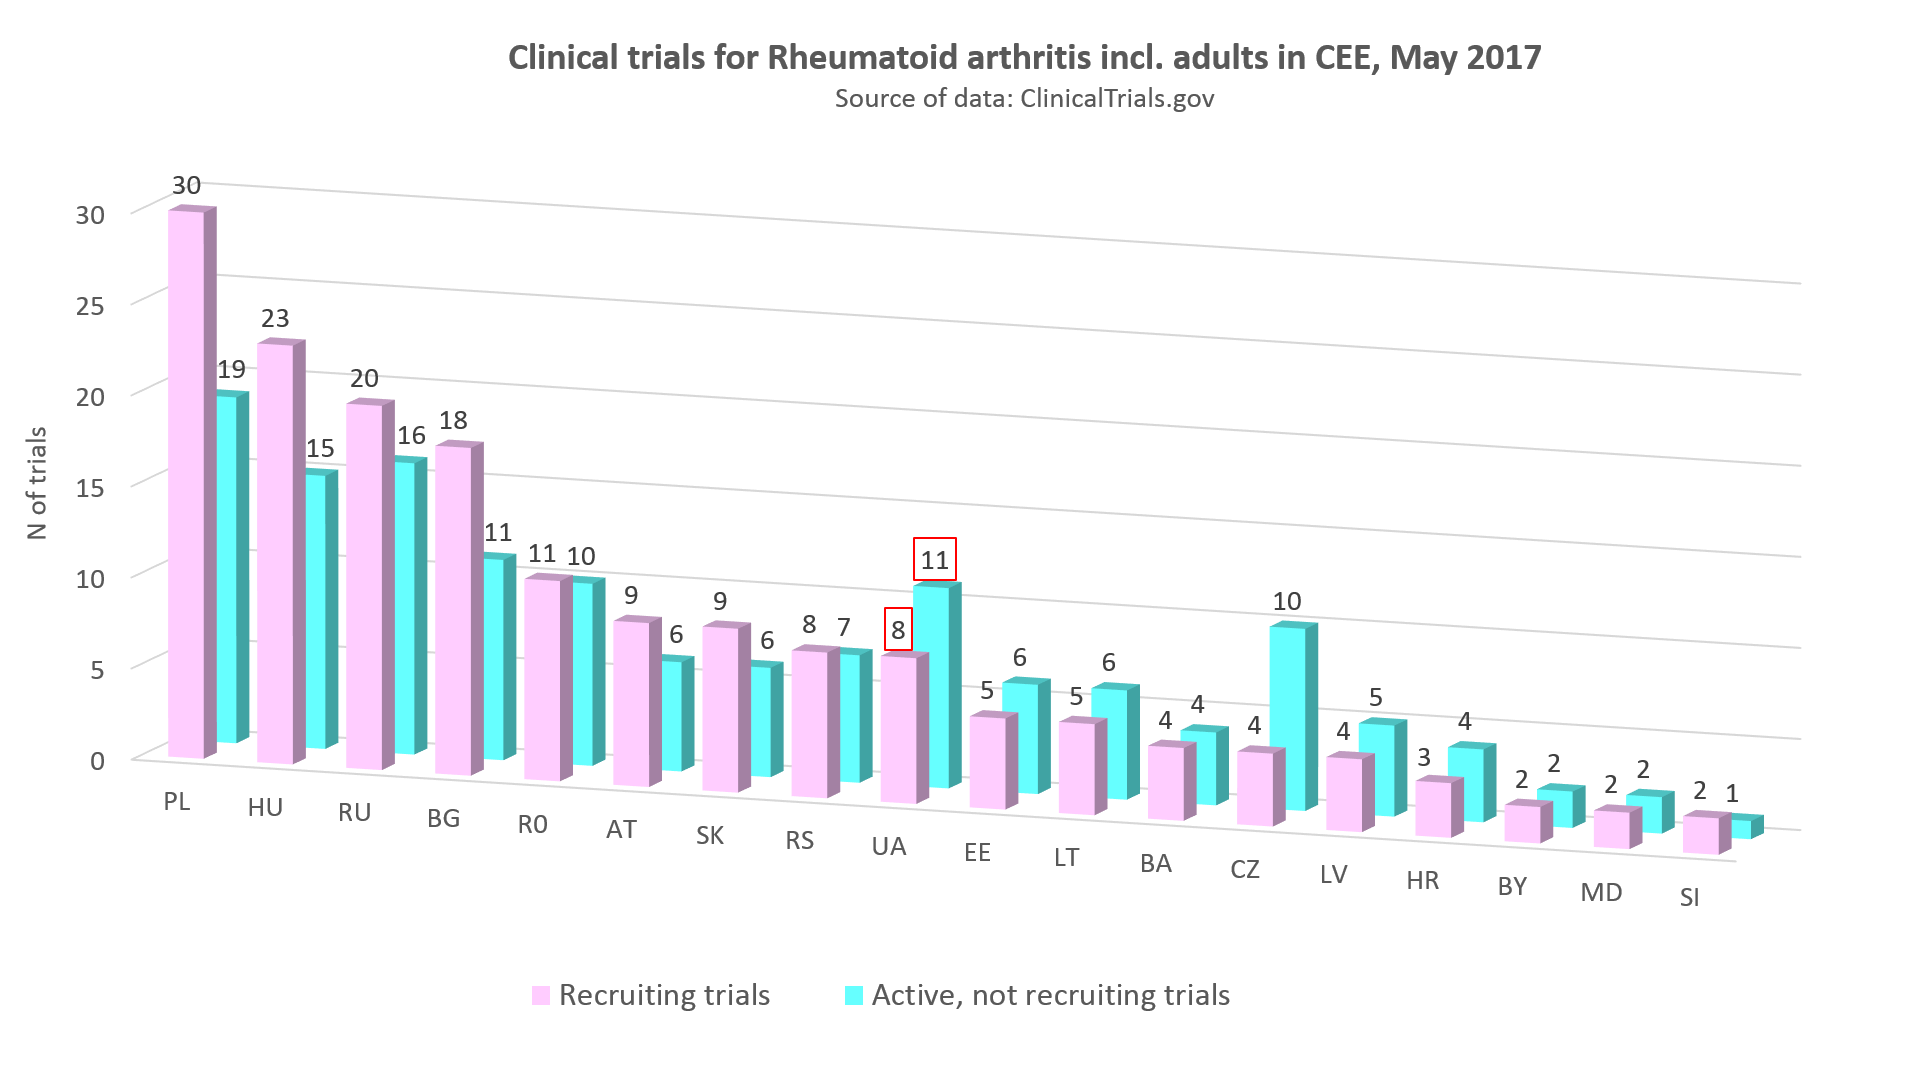 clinical trials for rheumatoid arthritis incl adults in CEE